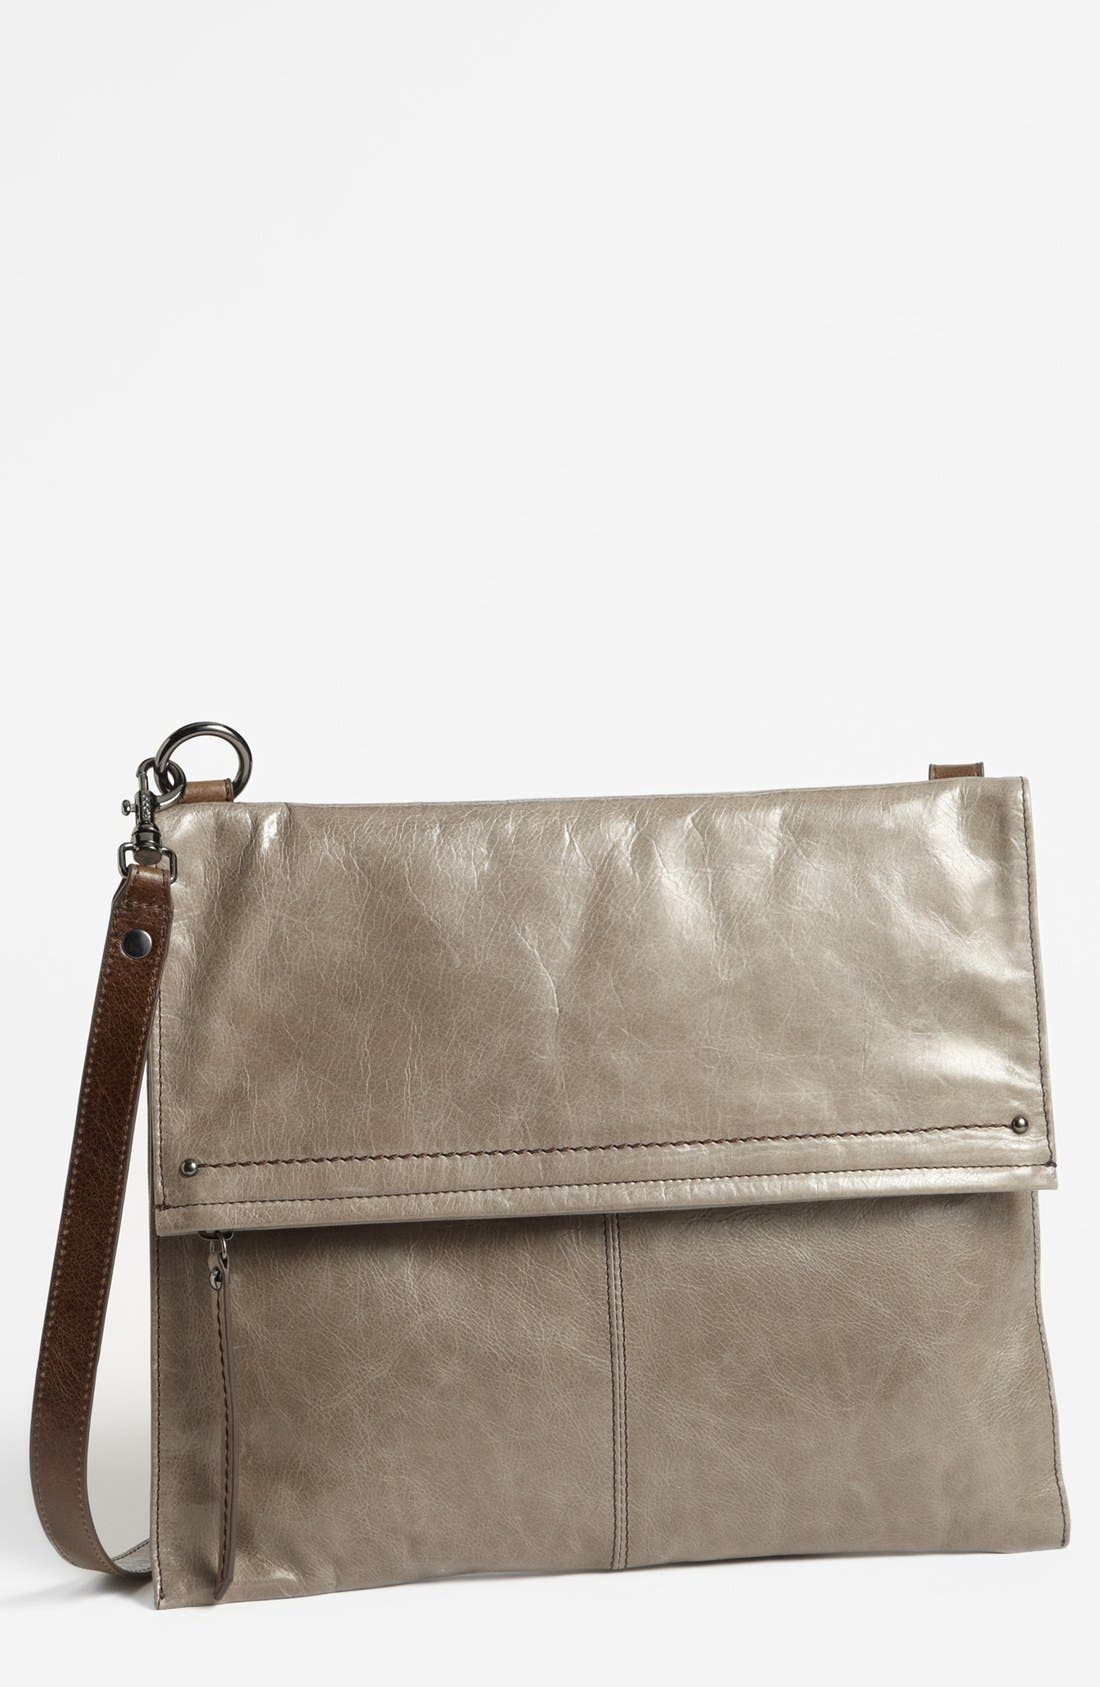 Alternate Image 1 Selected - Hobo 'Lindy' Crossbody Bag